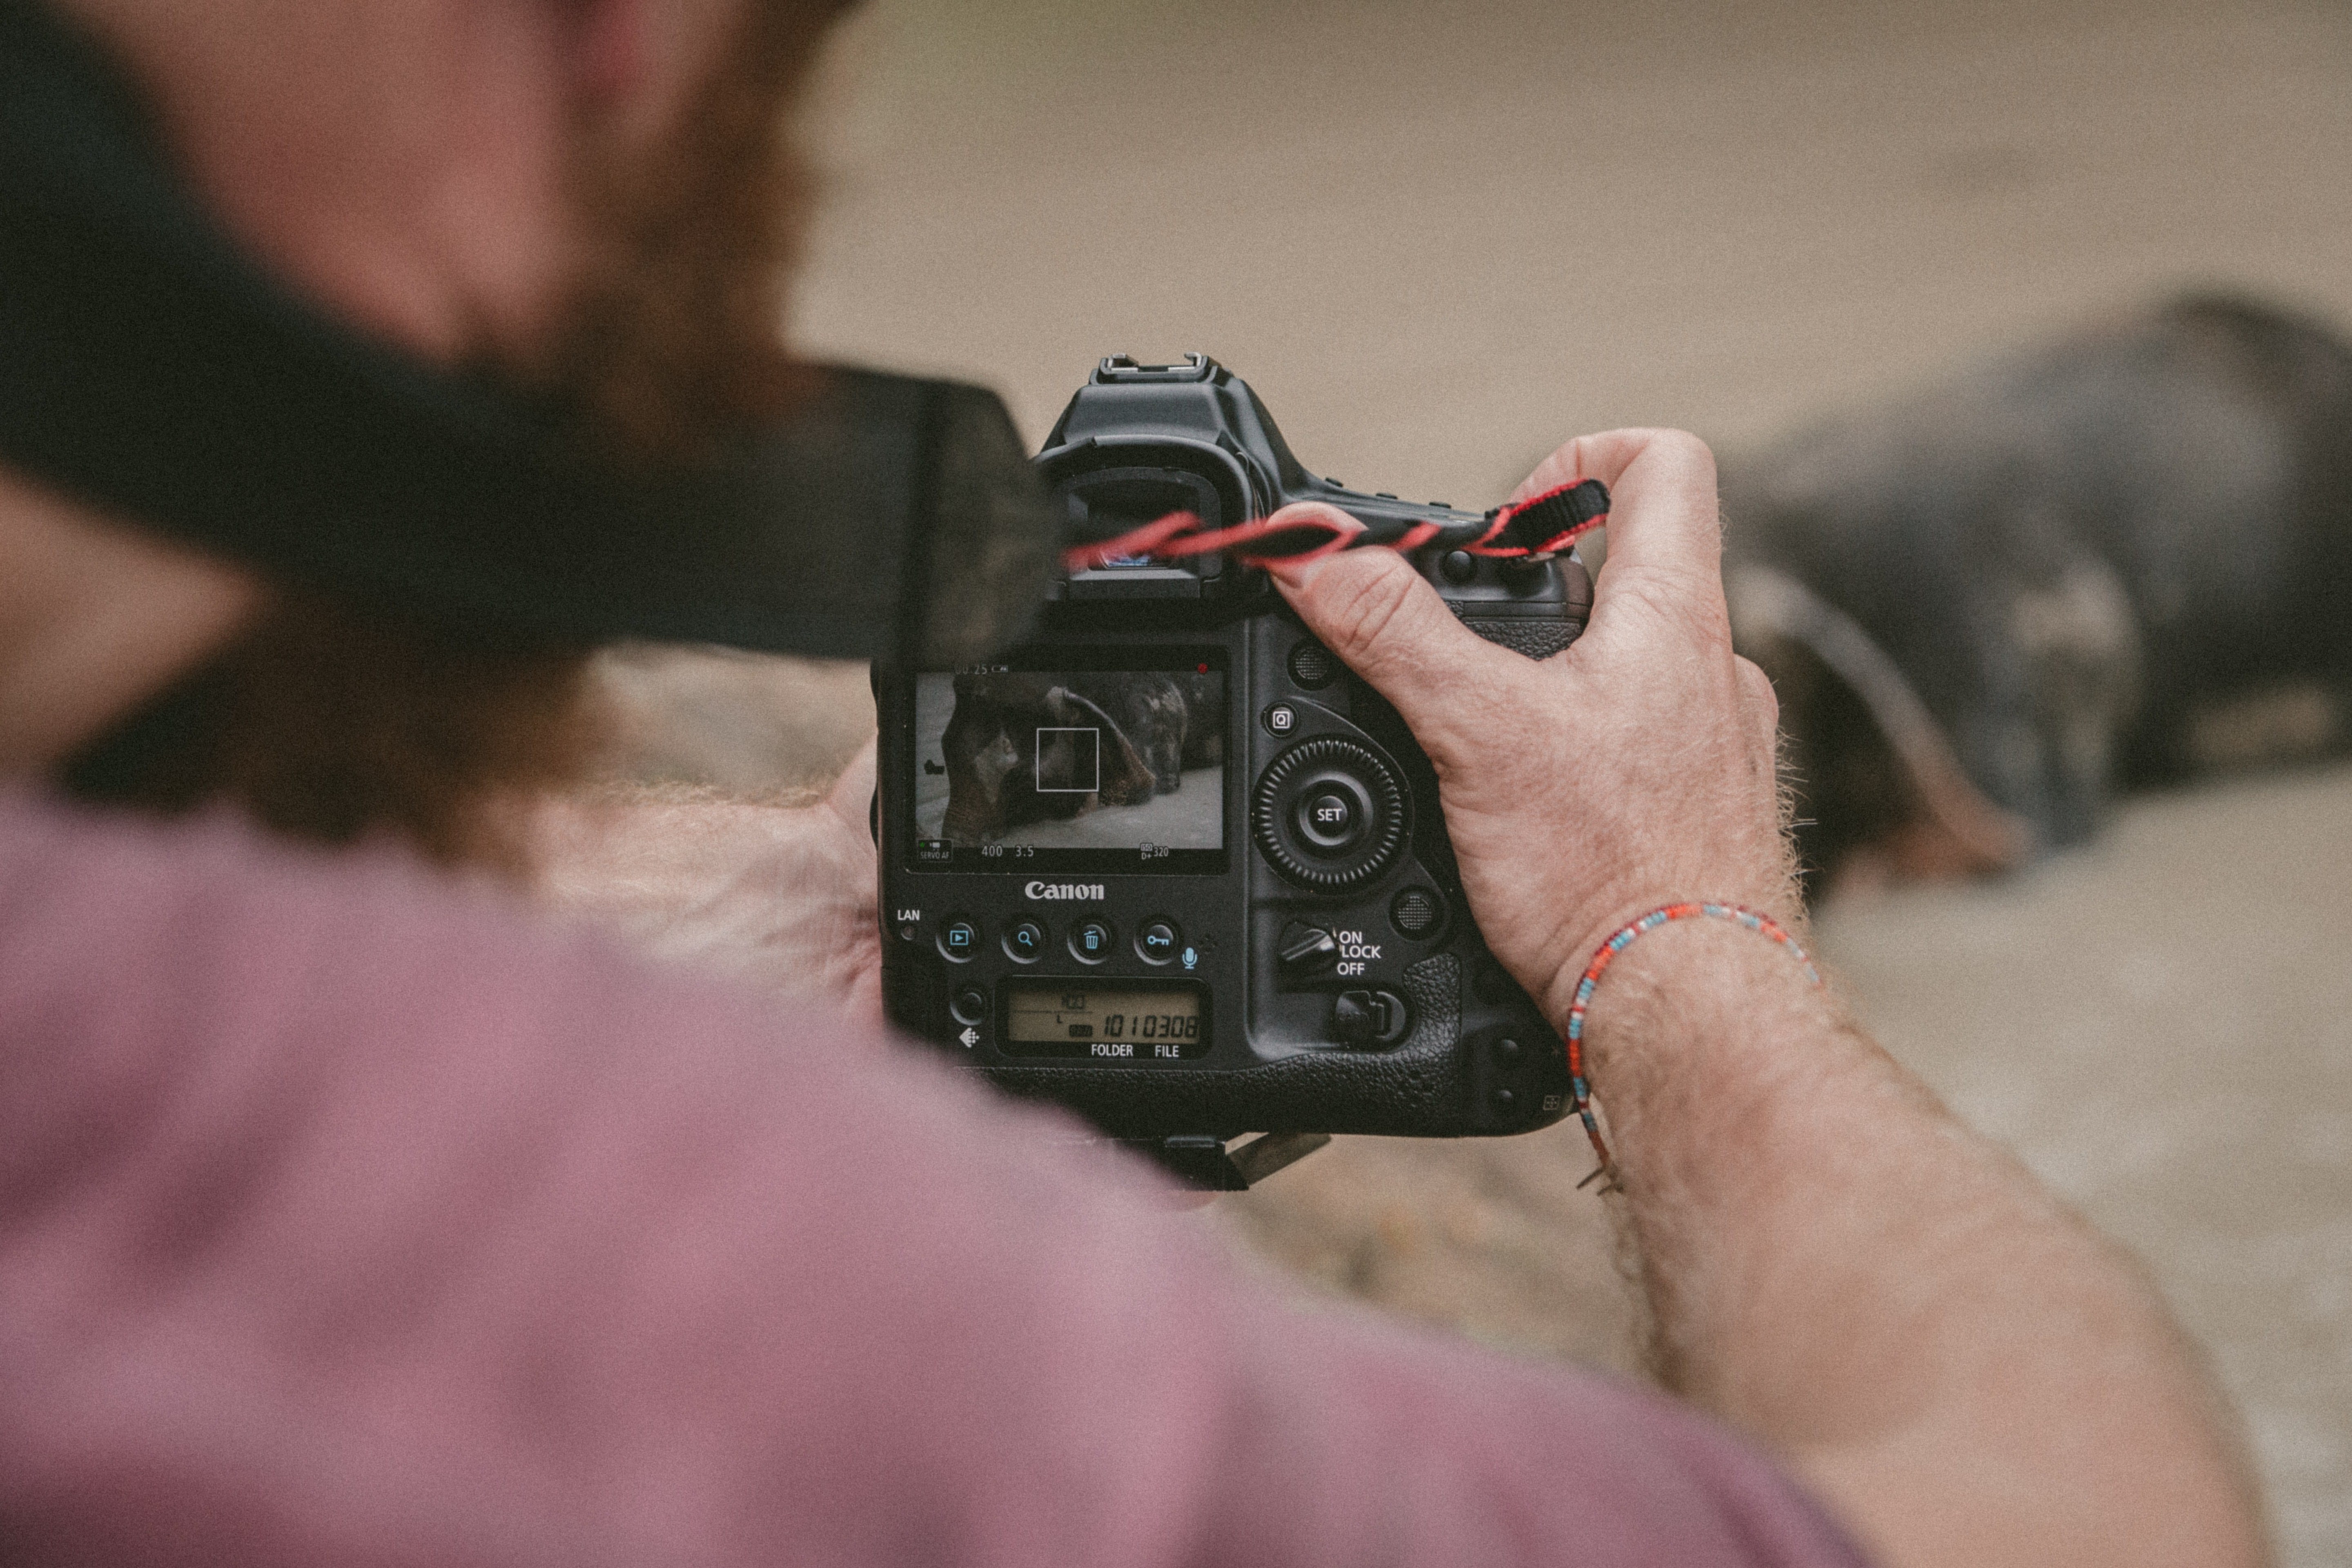 person holding black camera taking photo of animal